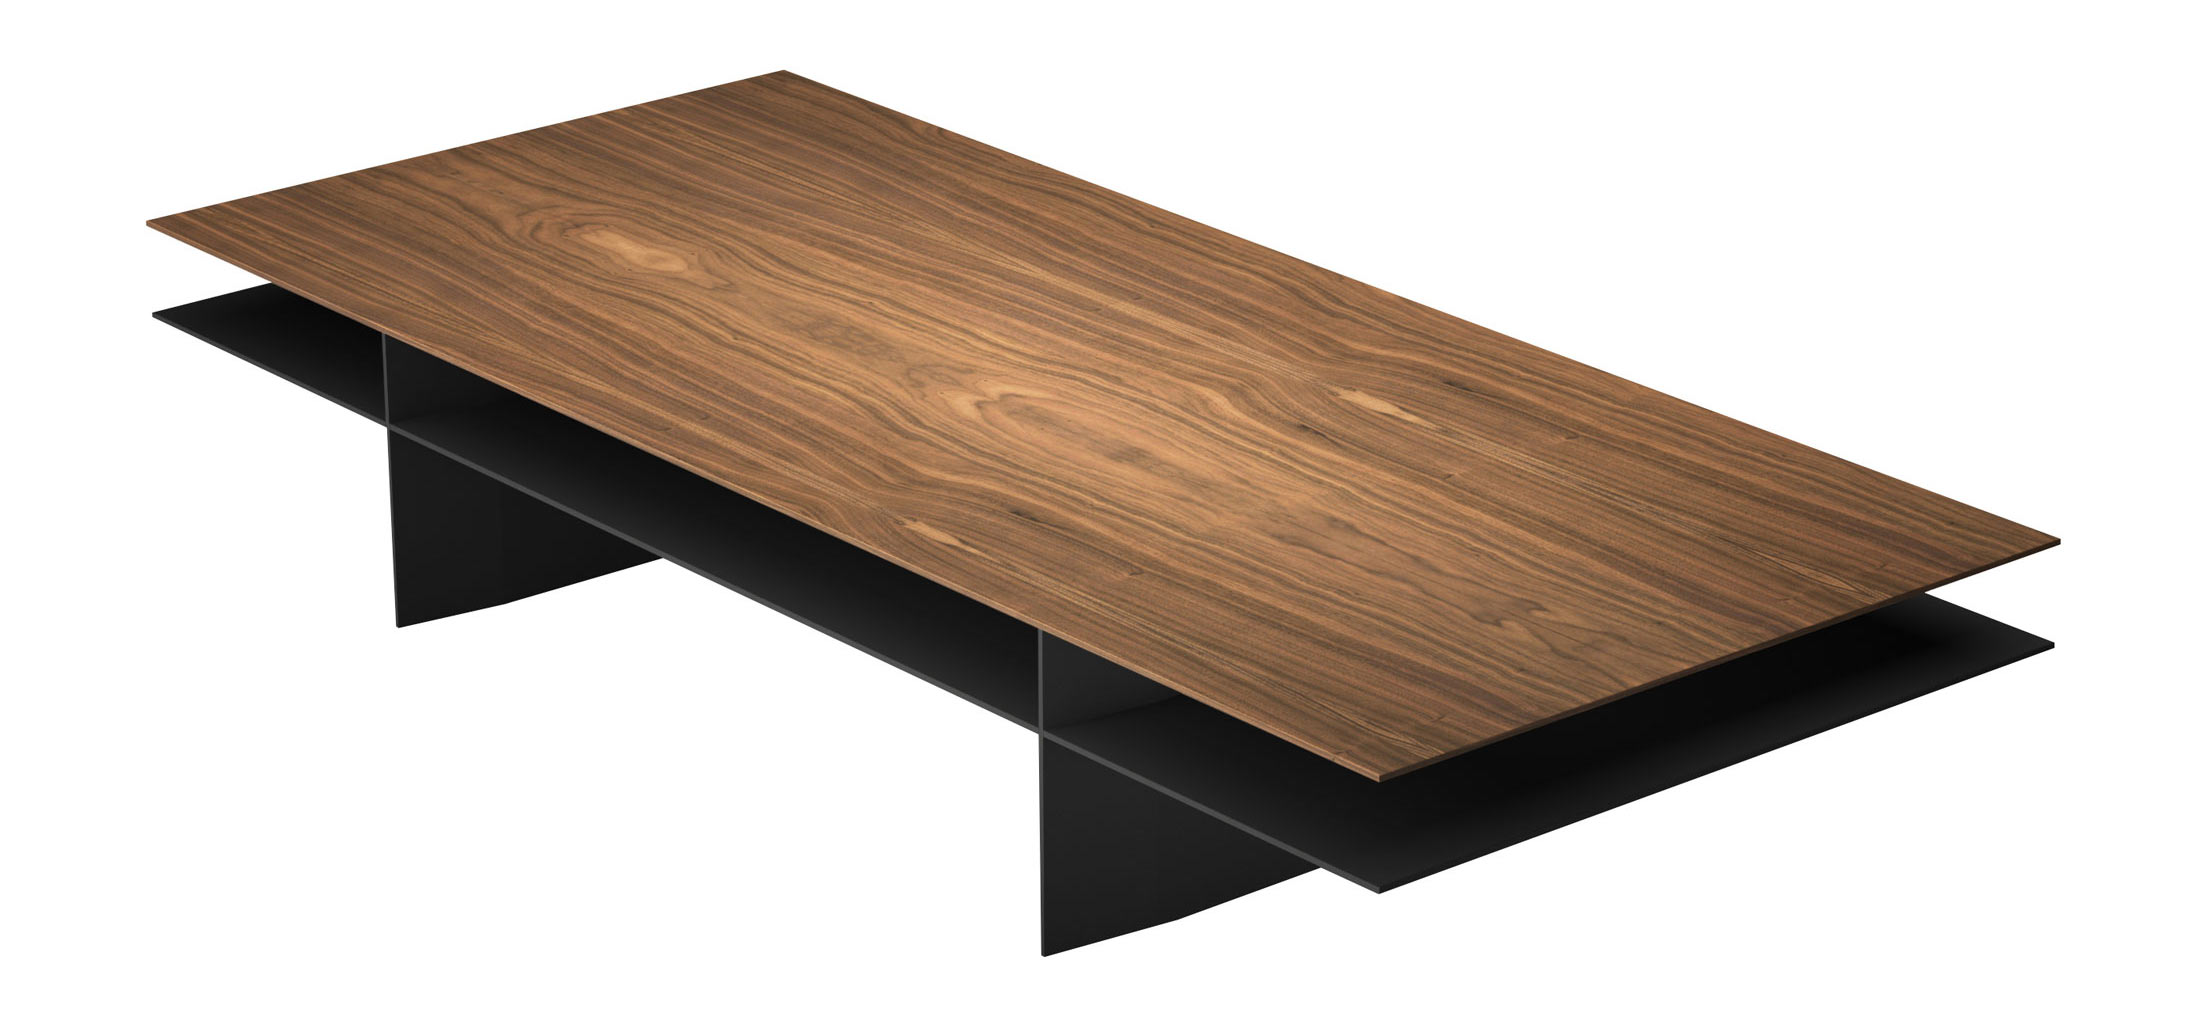 Kensington Coffee Table Walnut on Graphite by Modloft